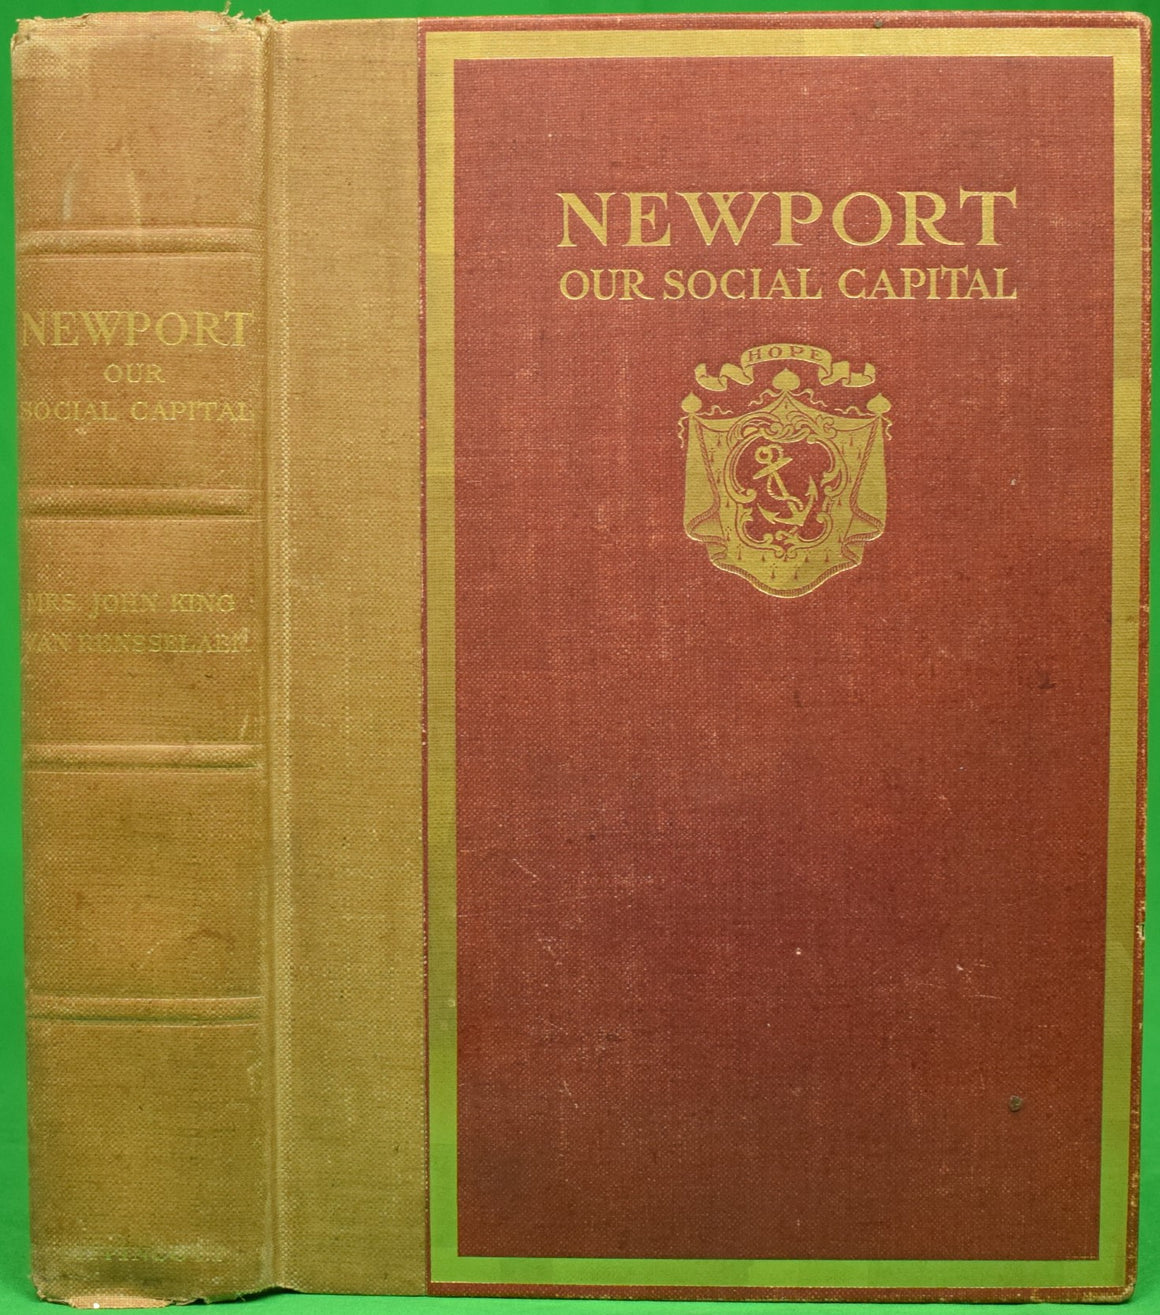 """Newport: Our Social Capital"" VAN RENSSELAER, Mrs. John King"